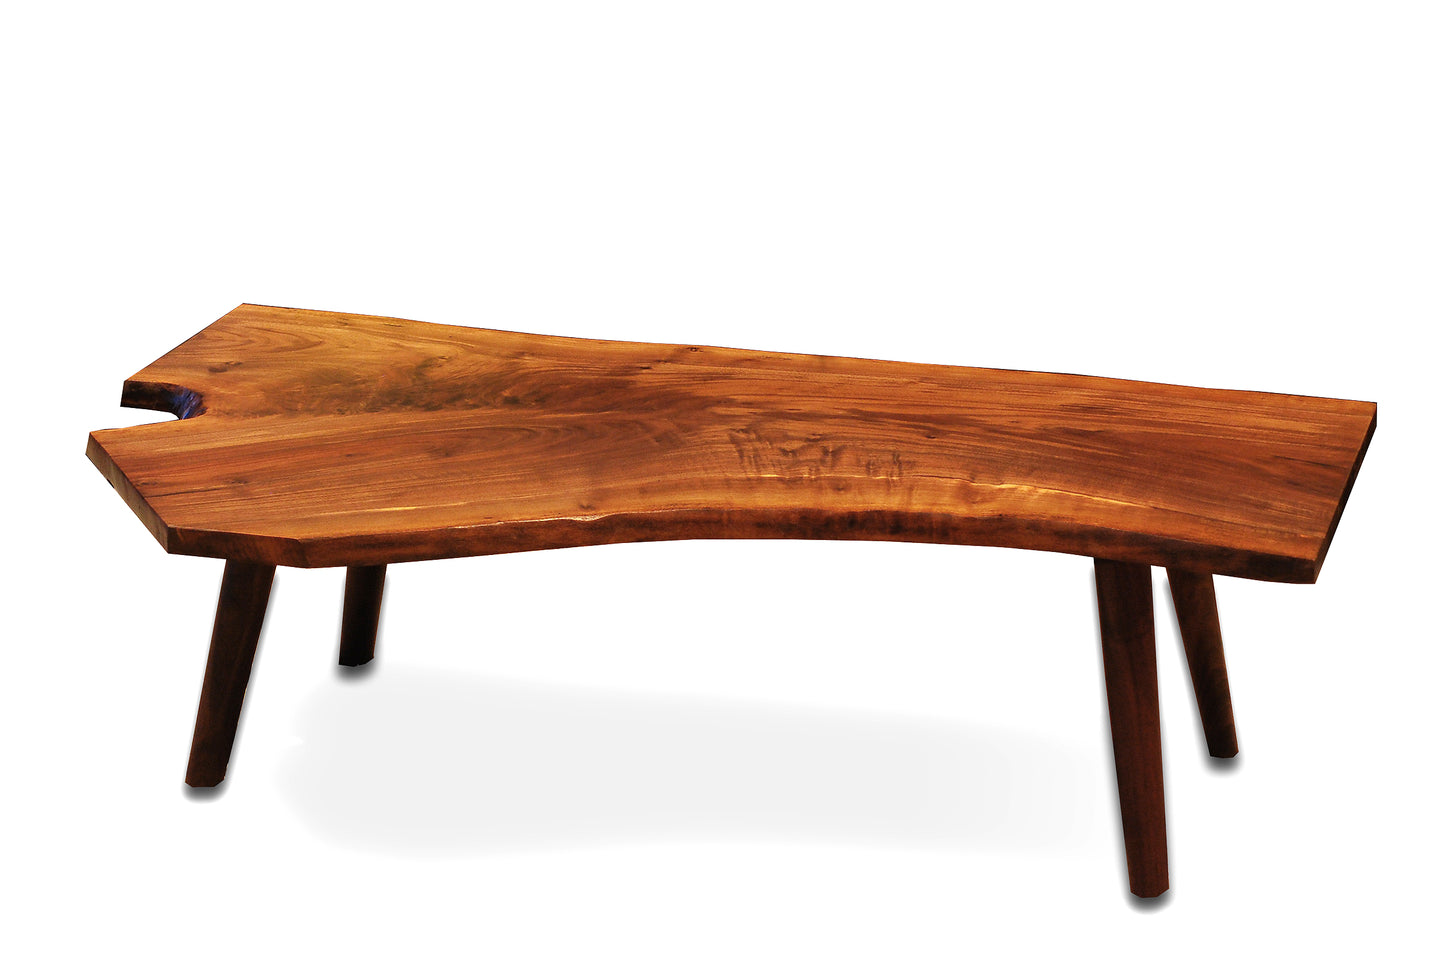 Live Edge Coffee Table - Wood legs